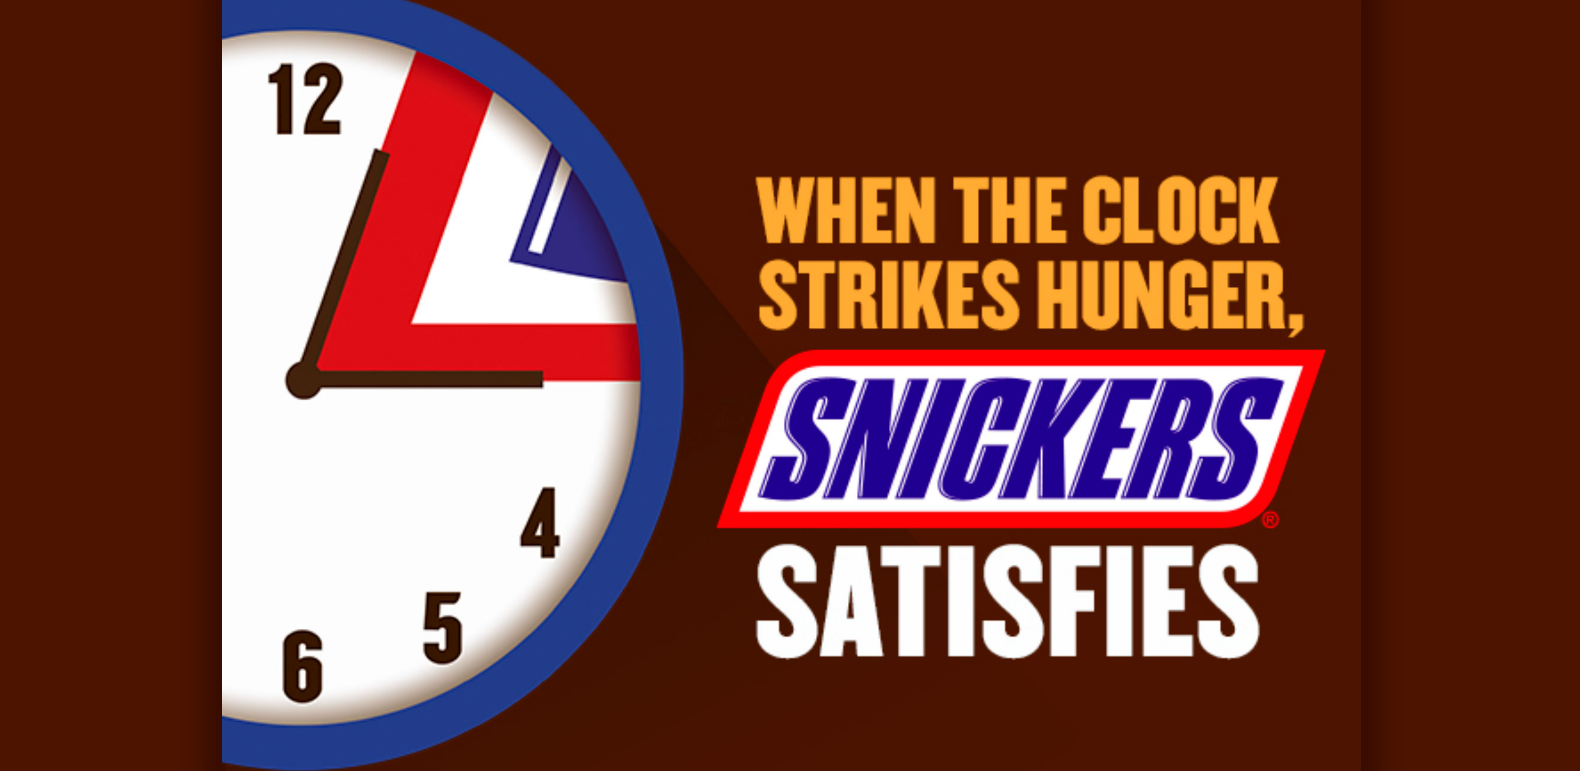 Play the Snickers Hungry Hour Instant Win Game daily for your chance to win 1 of 92 Apple Watches Series 4 Smart Watches. Let's Face It, You're Not You When You're Hungry. #EatASNICKERS and Curb That Hunger.